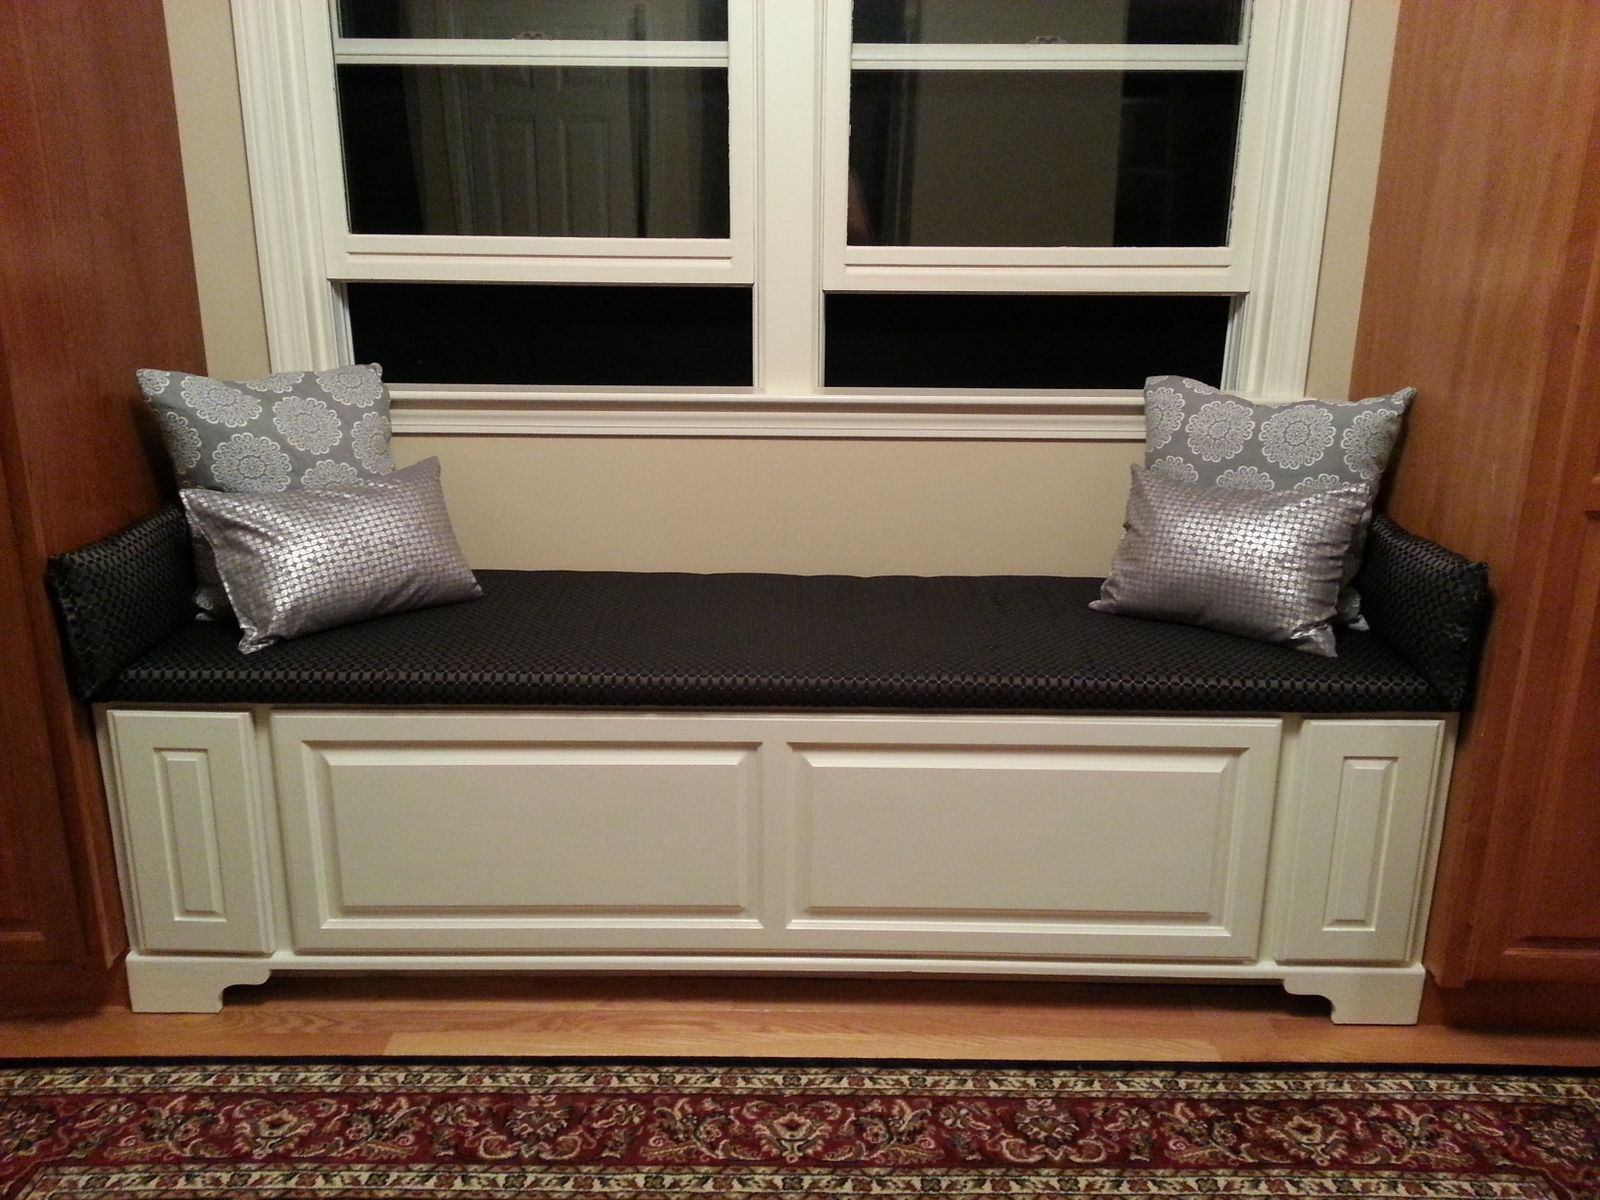 Hand Made Window Bench W/ Drawers By The Homestead